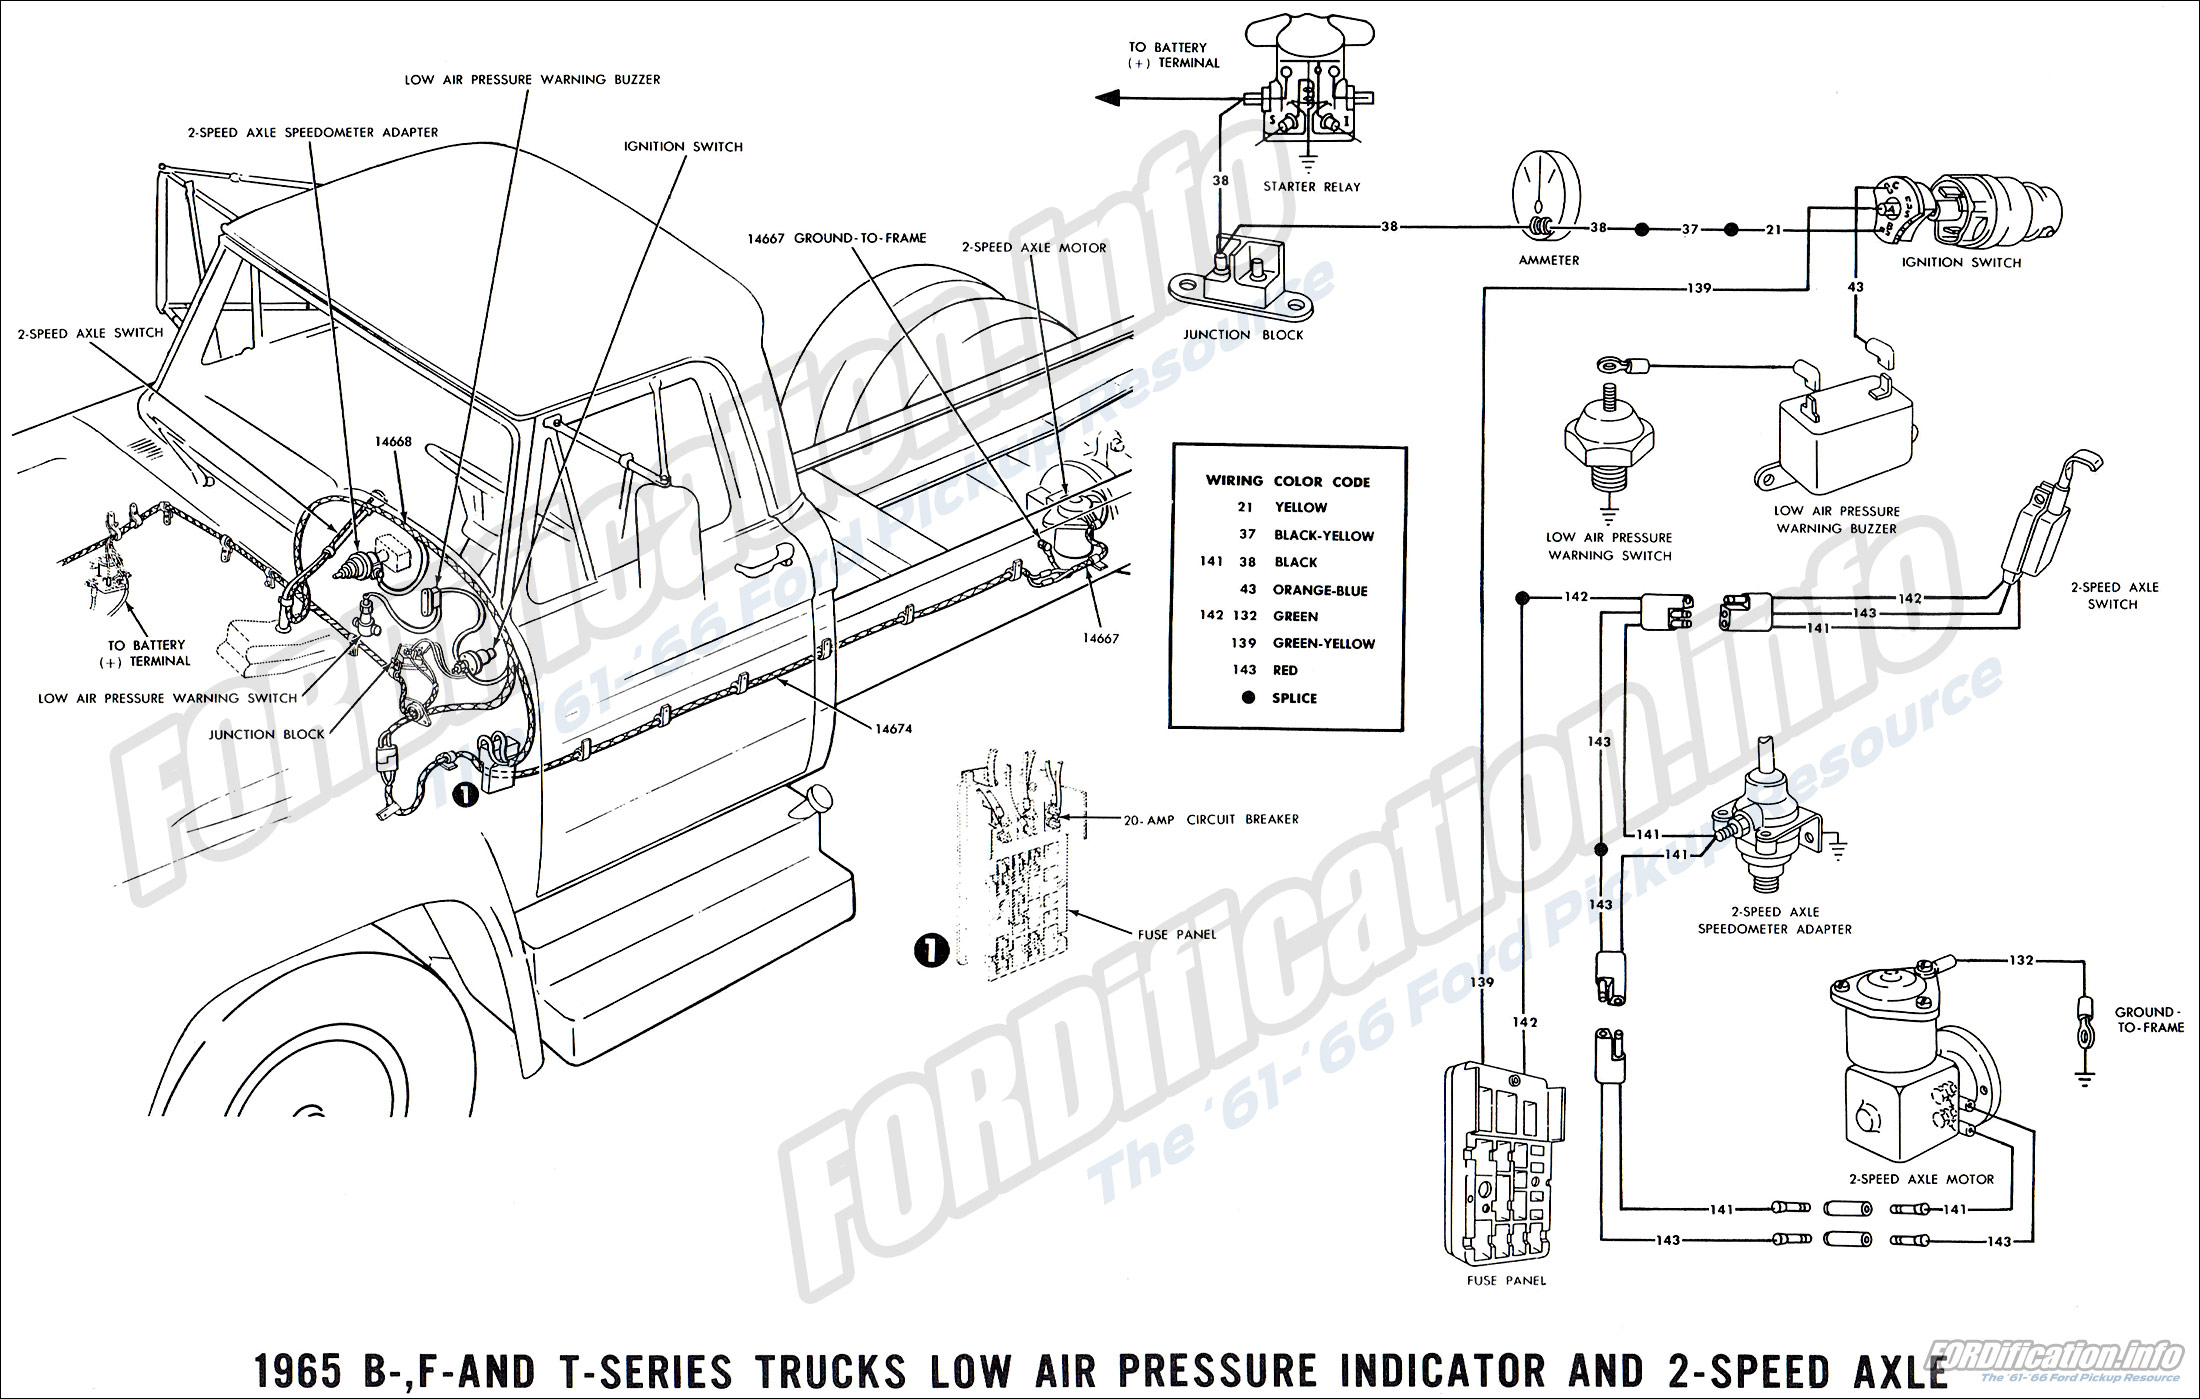 1965 ford truck wiring diagrams - fordification.info - the ... 1965 ford truck wiring diagram 1965 ford truck wiring